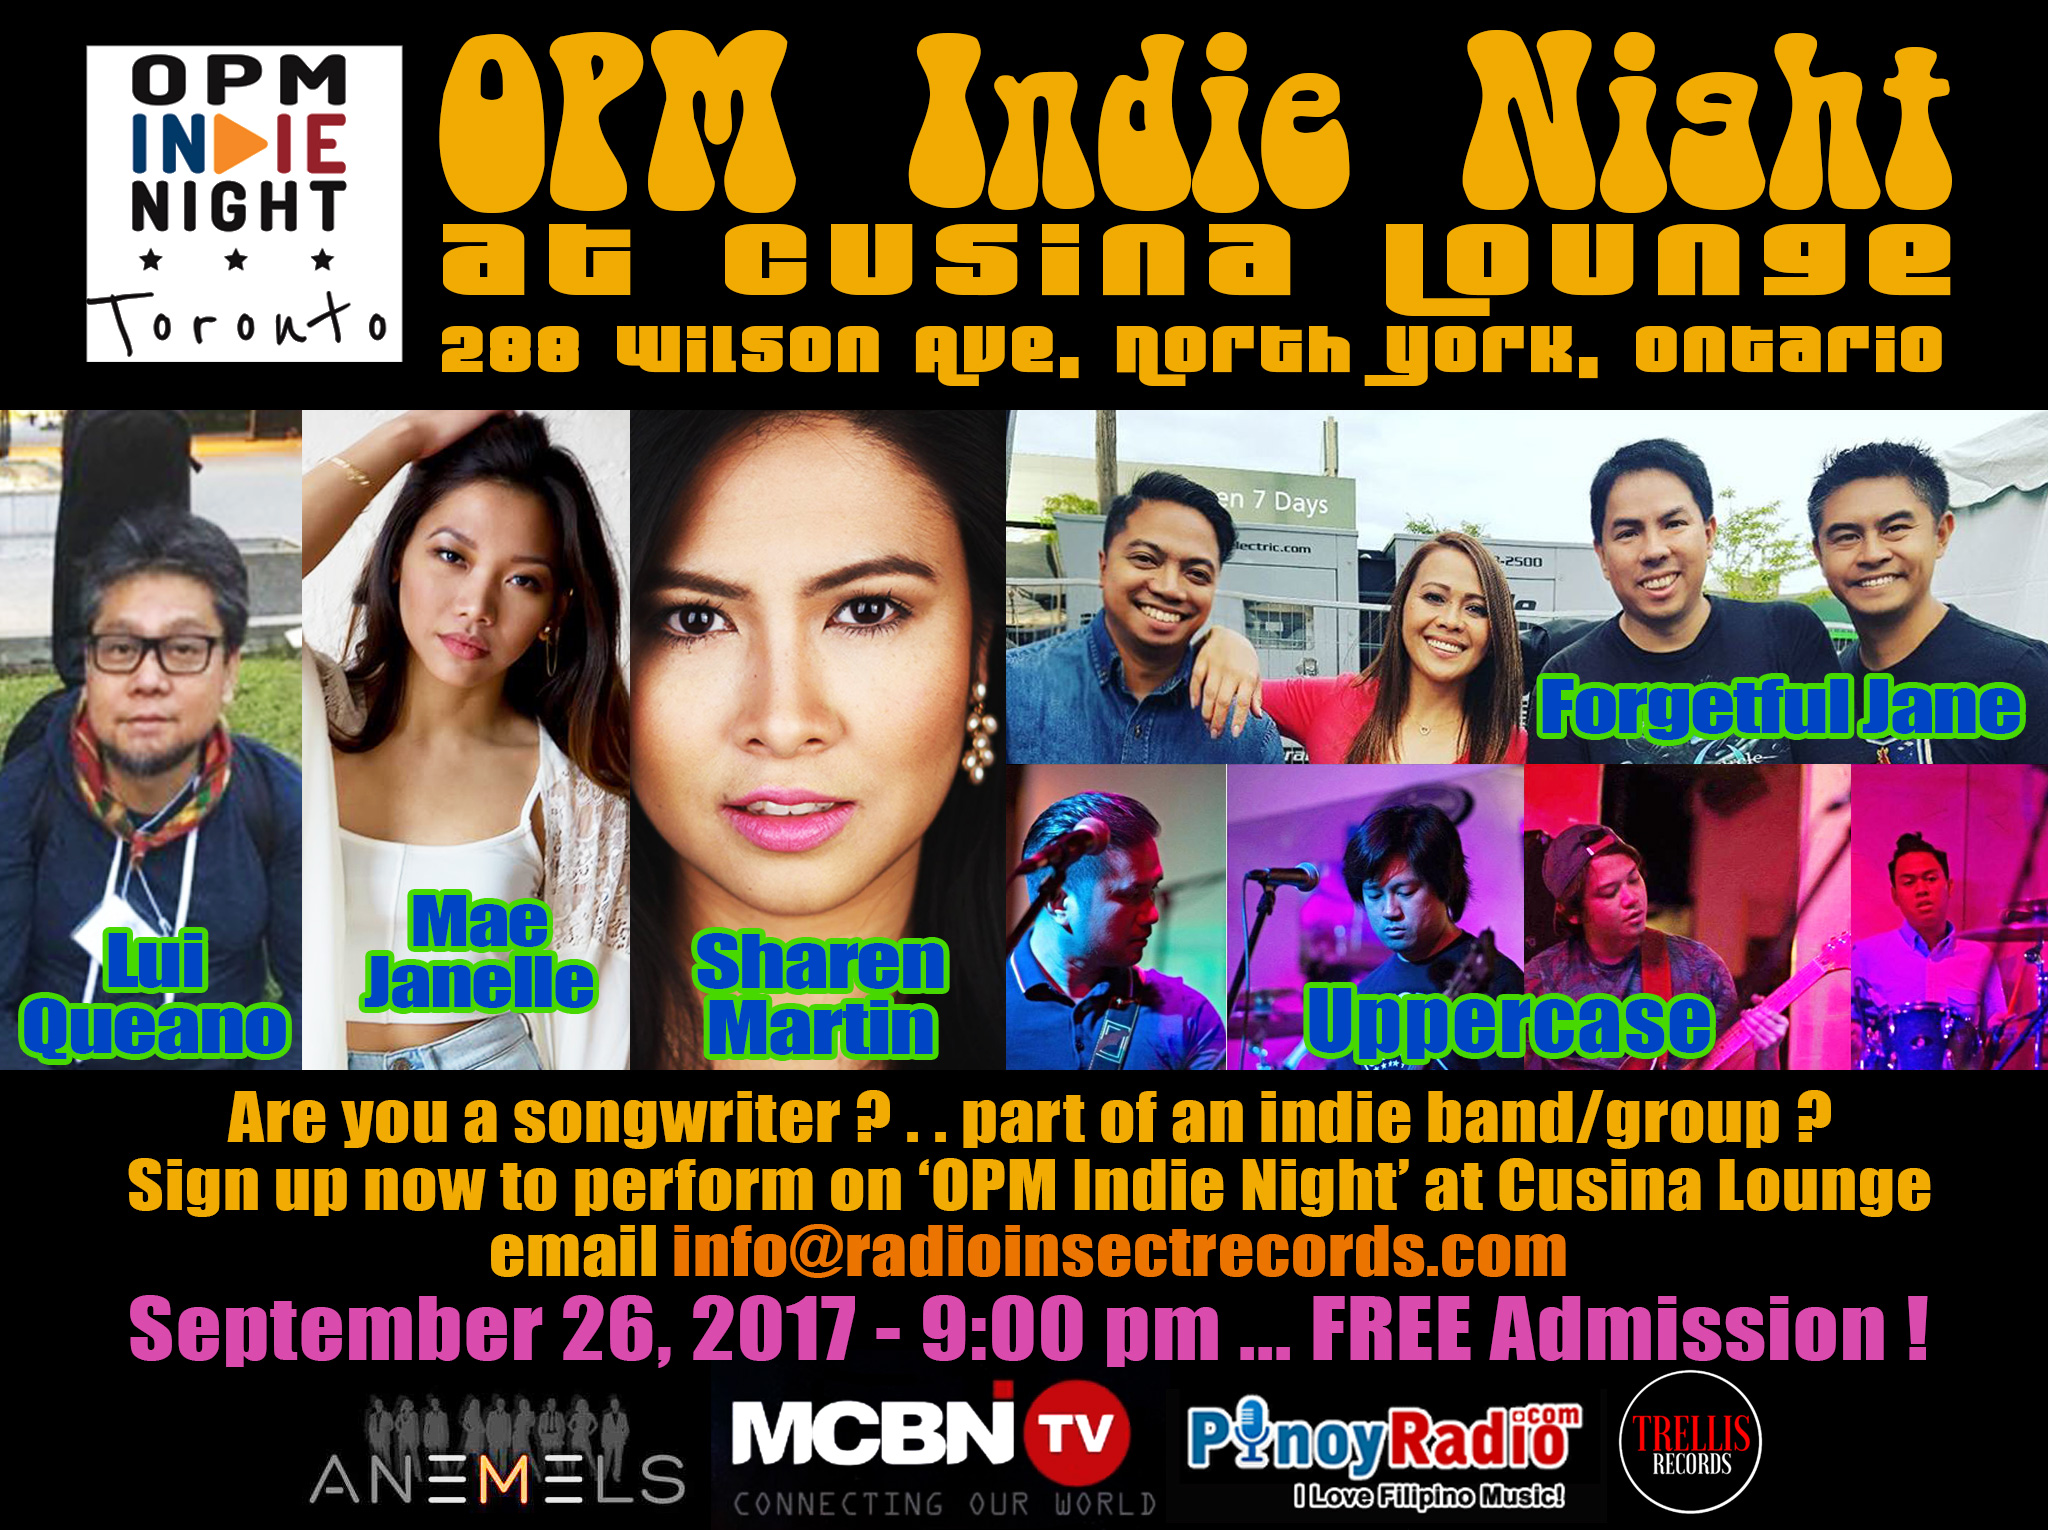 OPM Indie Night at Cusina Lounge - September 26, 2017 - FREE ADMISSION